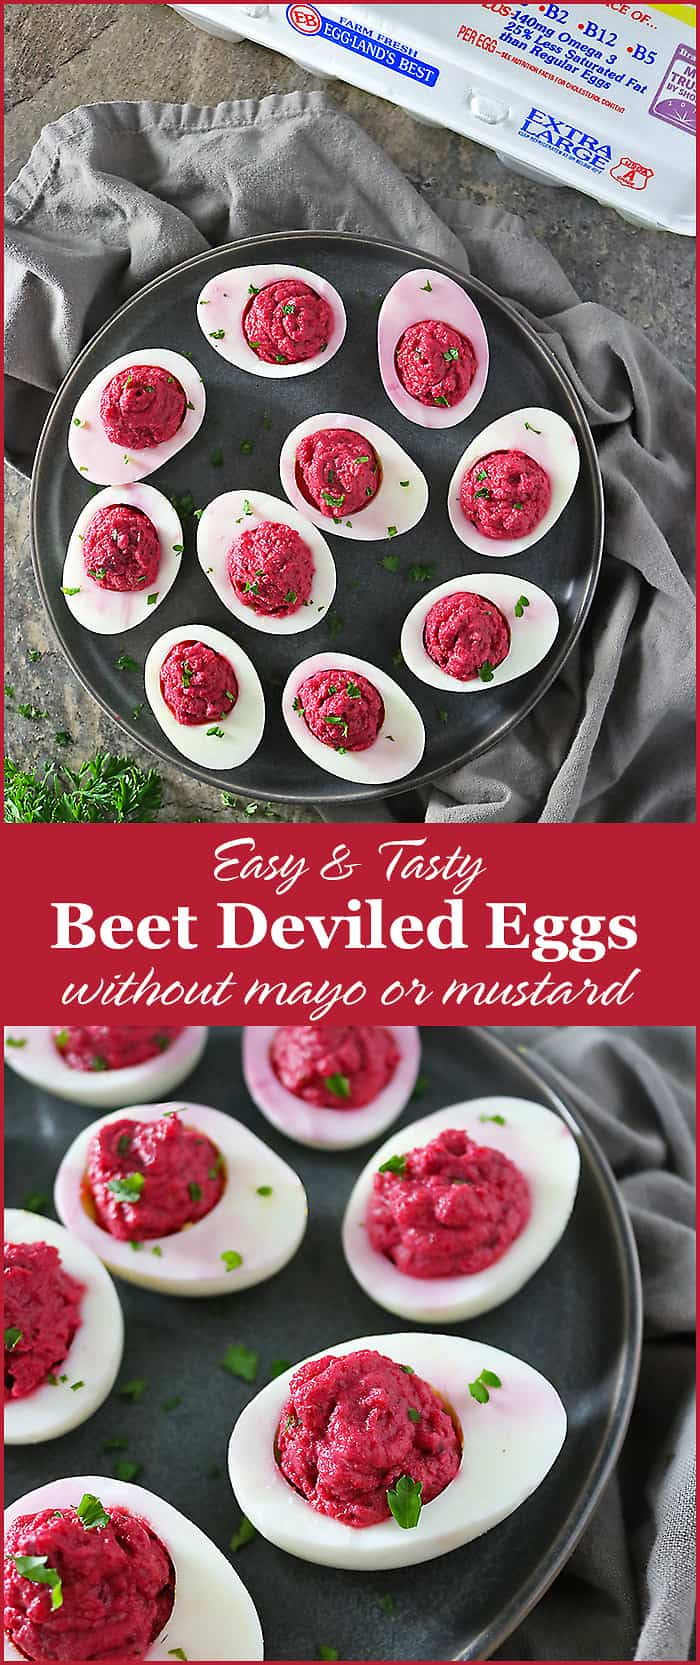 These Beet Deviled Eggs (with a spin) are spiced up with a hint of coriander, smoked paprika and chili powder, and instead of mayo and mustard, I went with red wine vinegar and Greek yogurt. To make things all pretty and jazz up the nutrition, I threw in some beets!